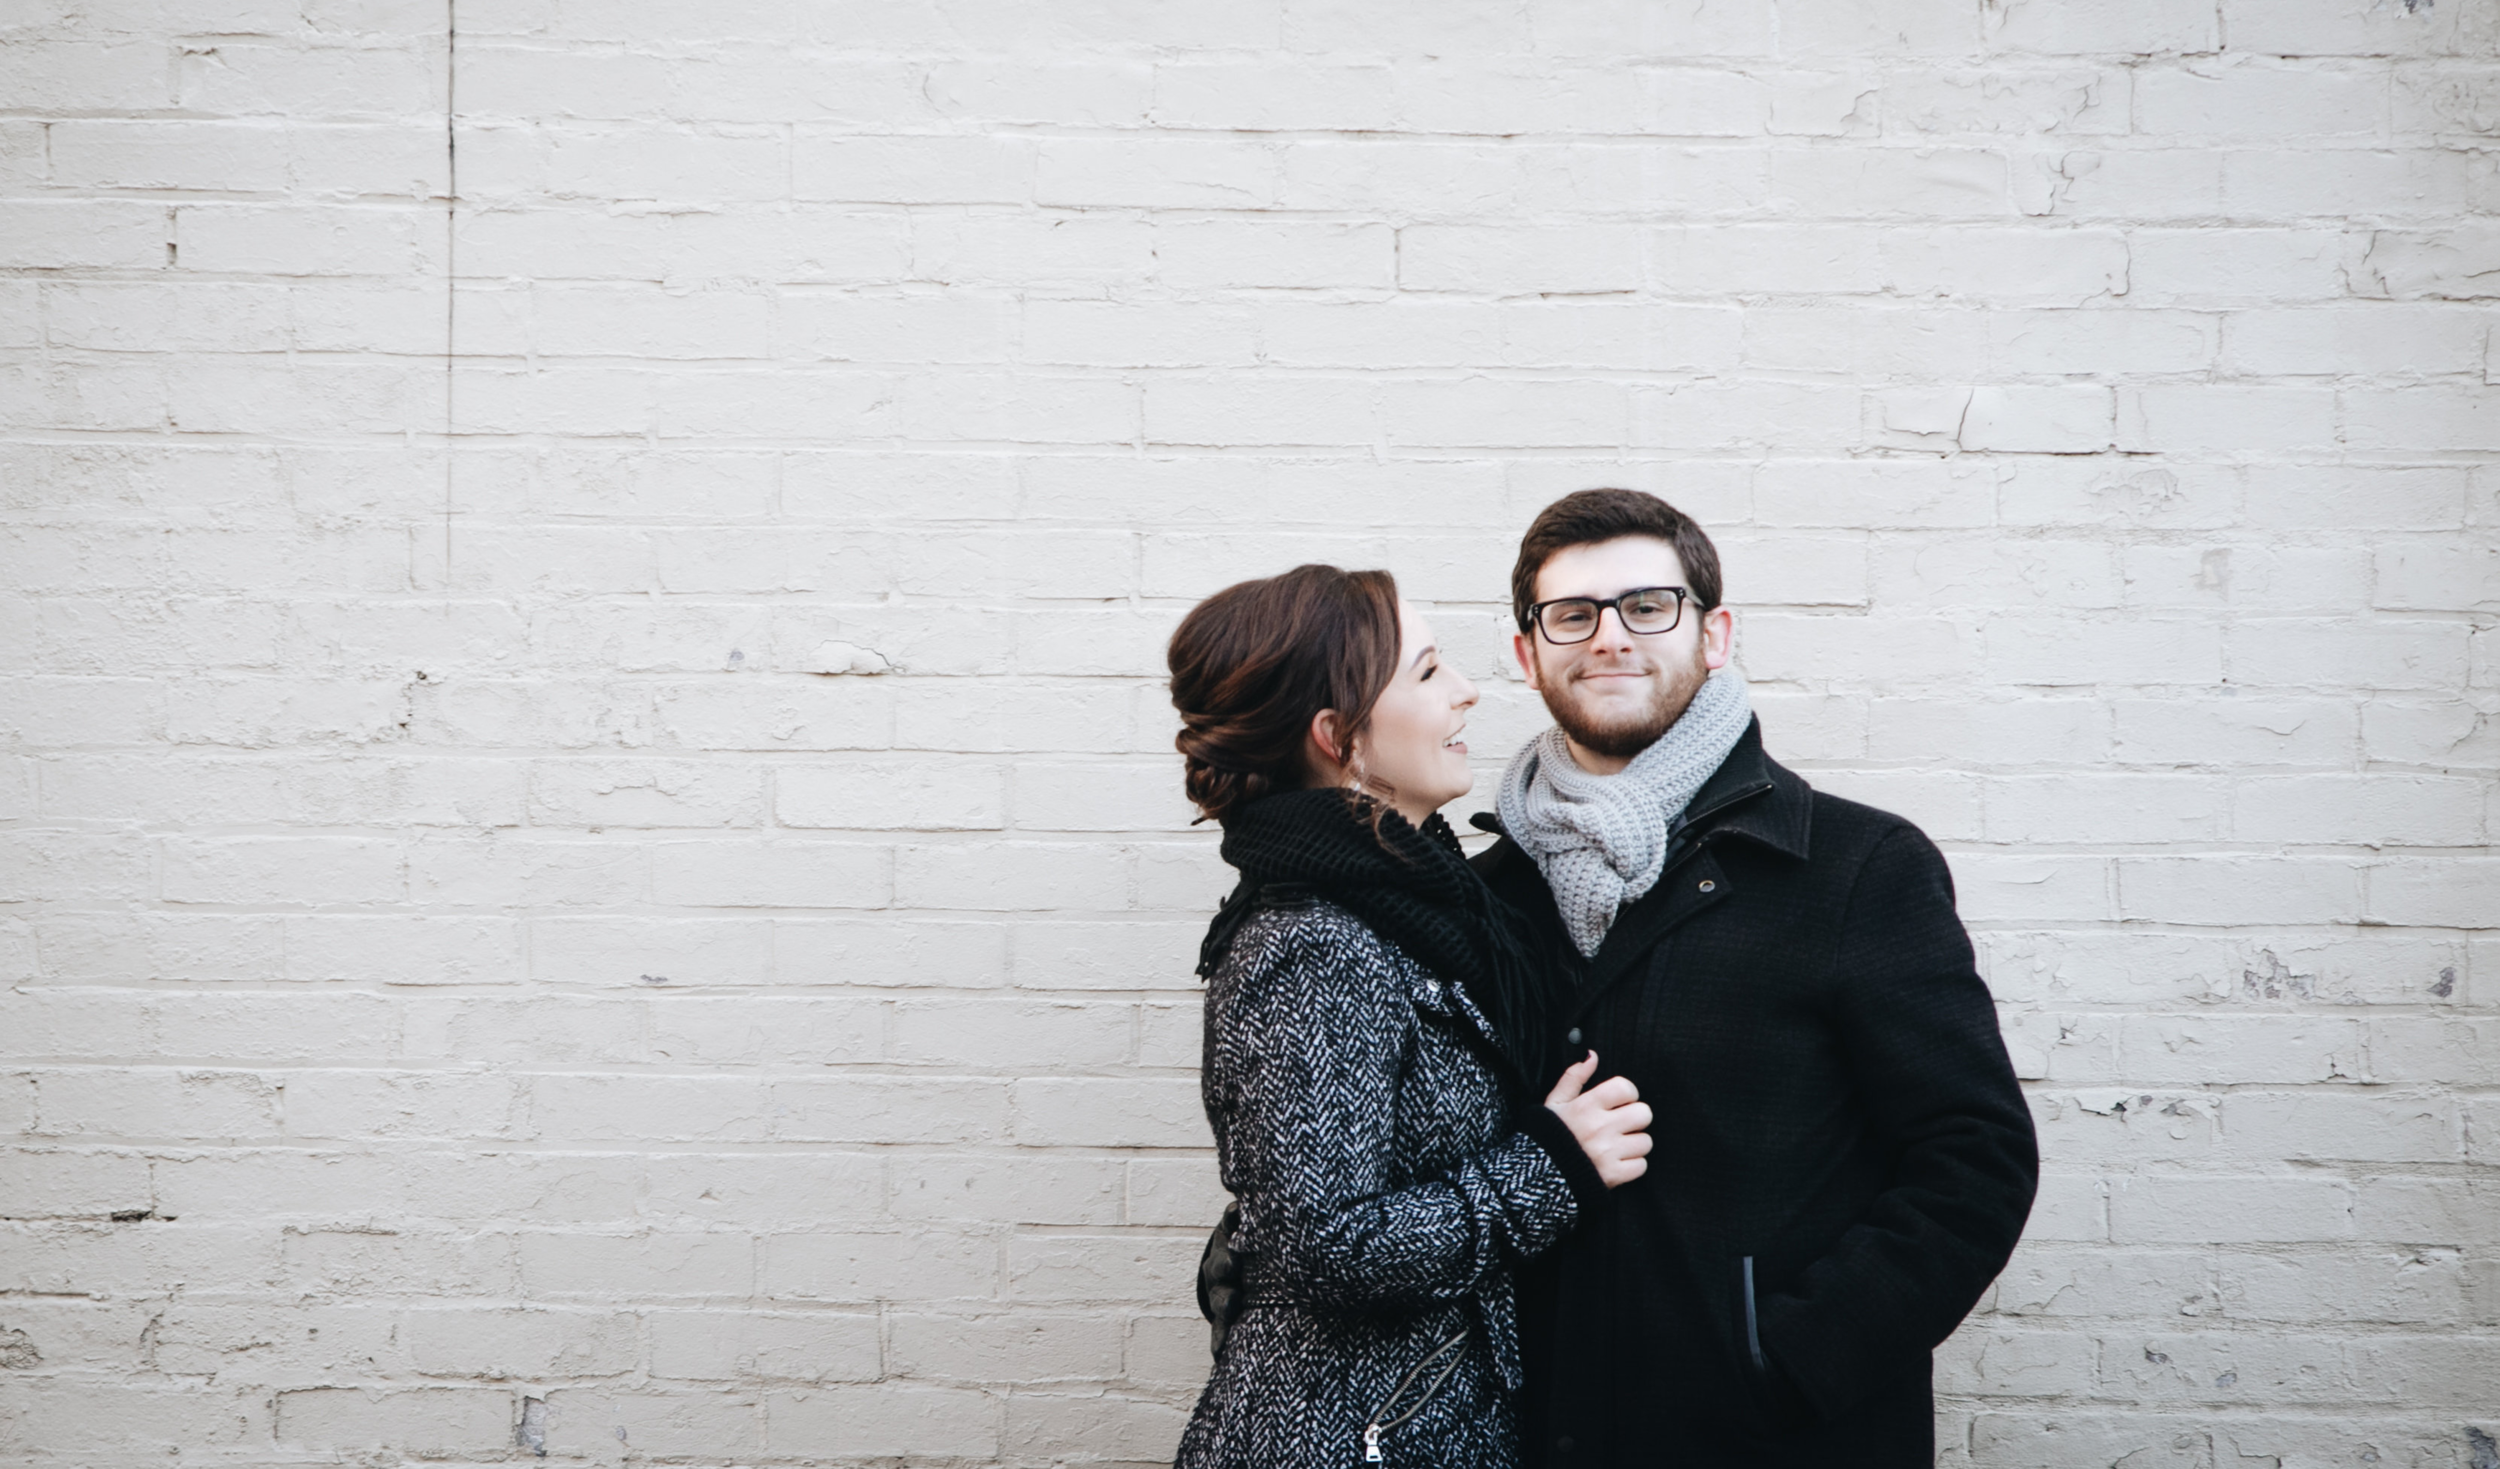 Max_and_Jorian_Washington_DC_Engagement_Session.png